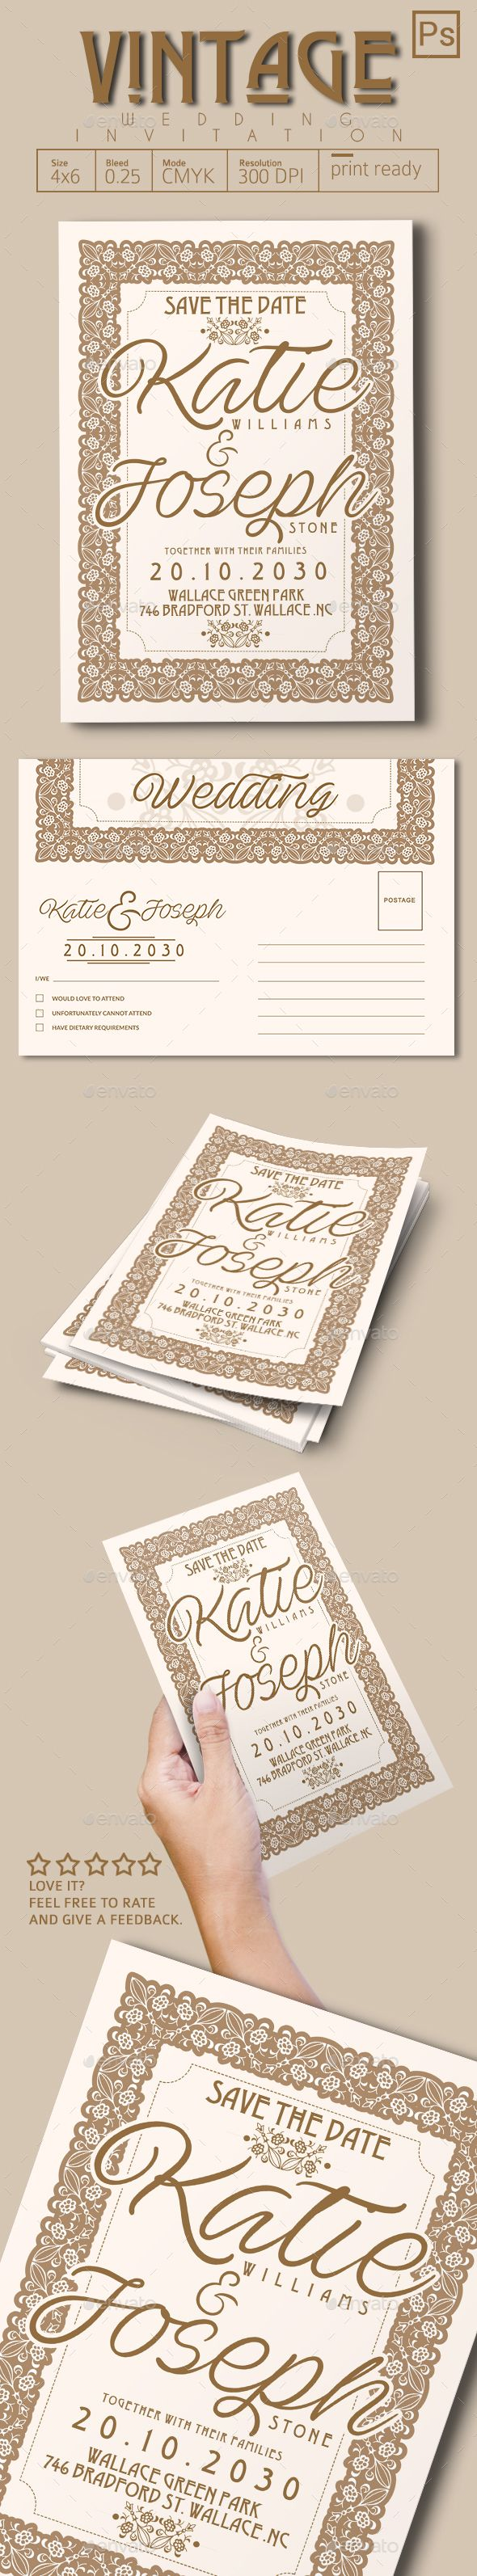 Best Images About Wedding Invitation Graphicriver On